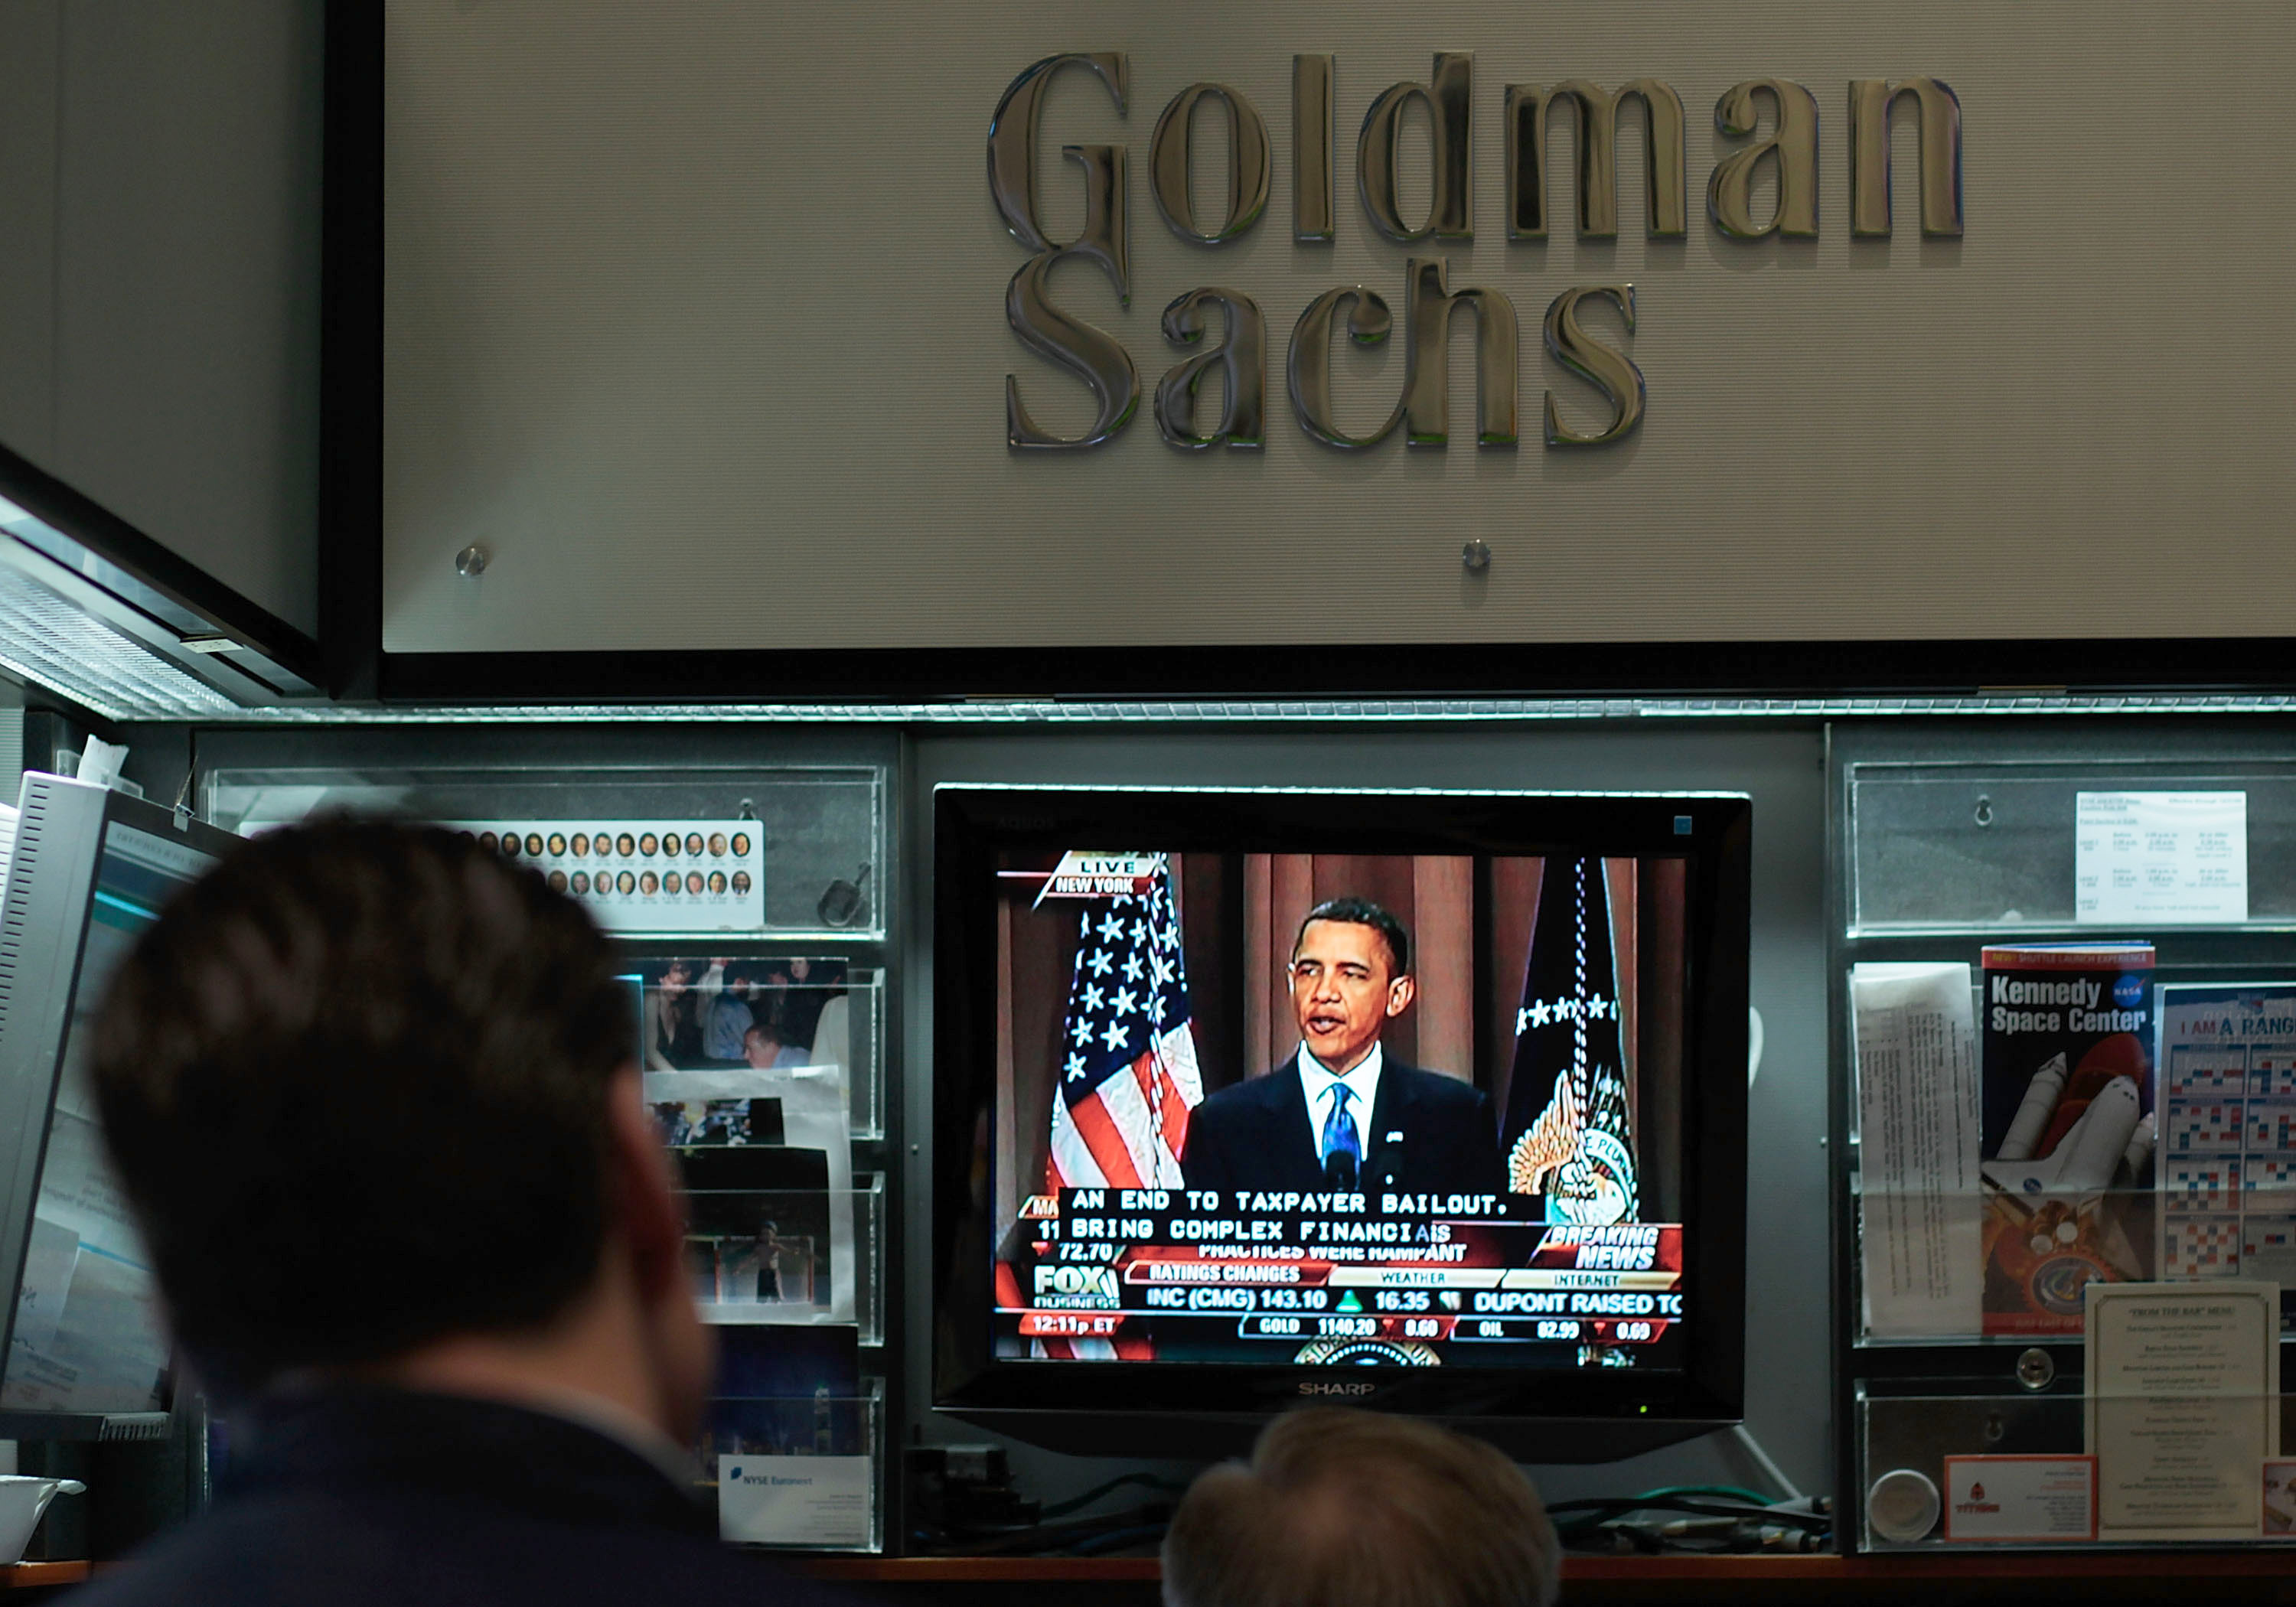 Wall Street Reacts To Obama Remarks On Regulatory Reform